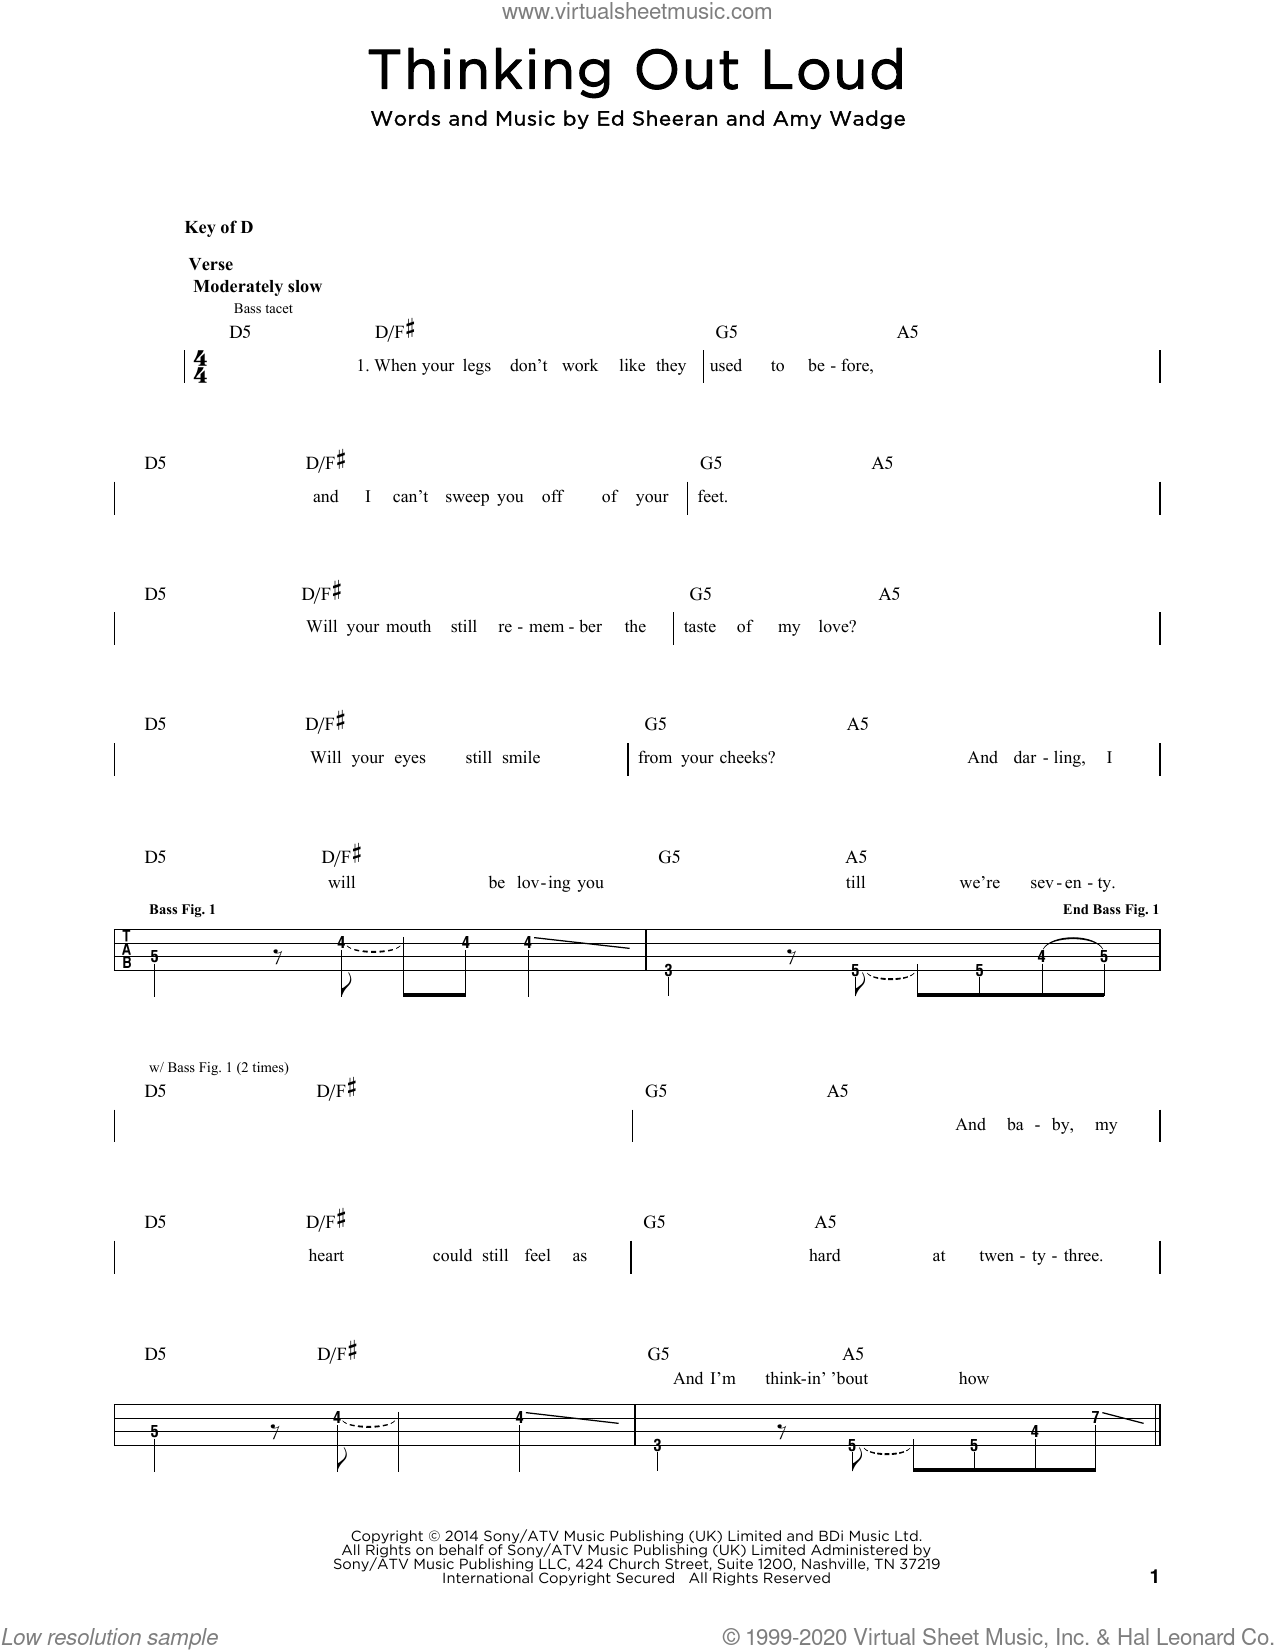 Thinking Out Loud sheet music for bass solo by Ed Sheeran and Amy Wadge, wedding score, intermediate skill level